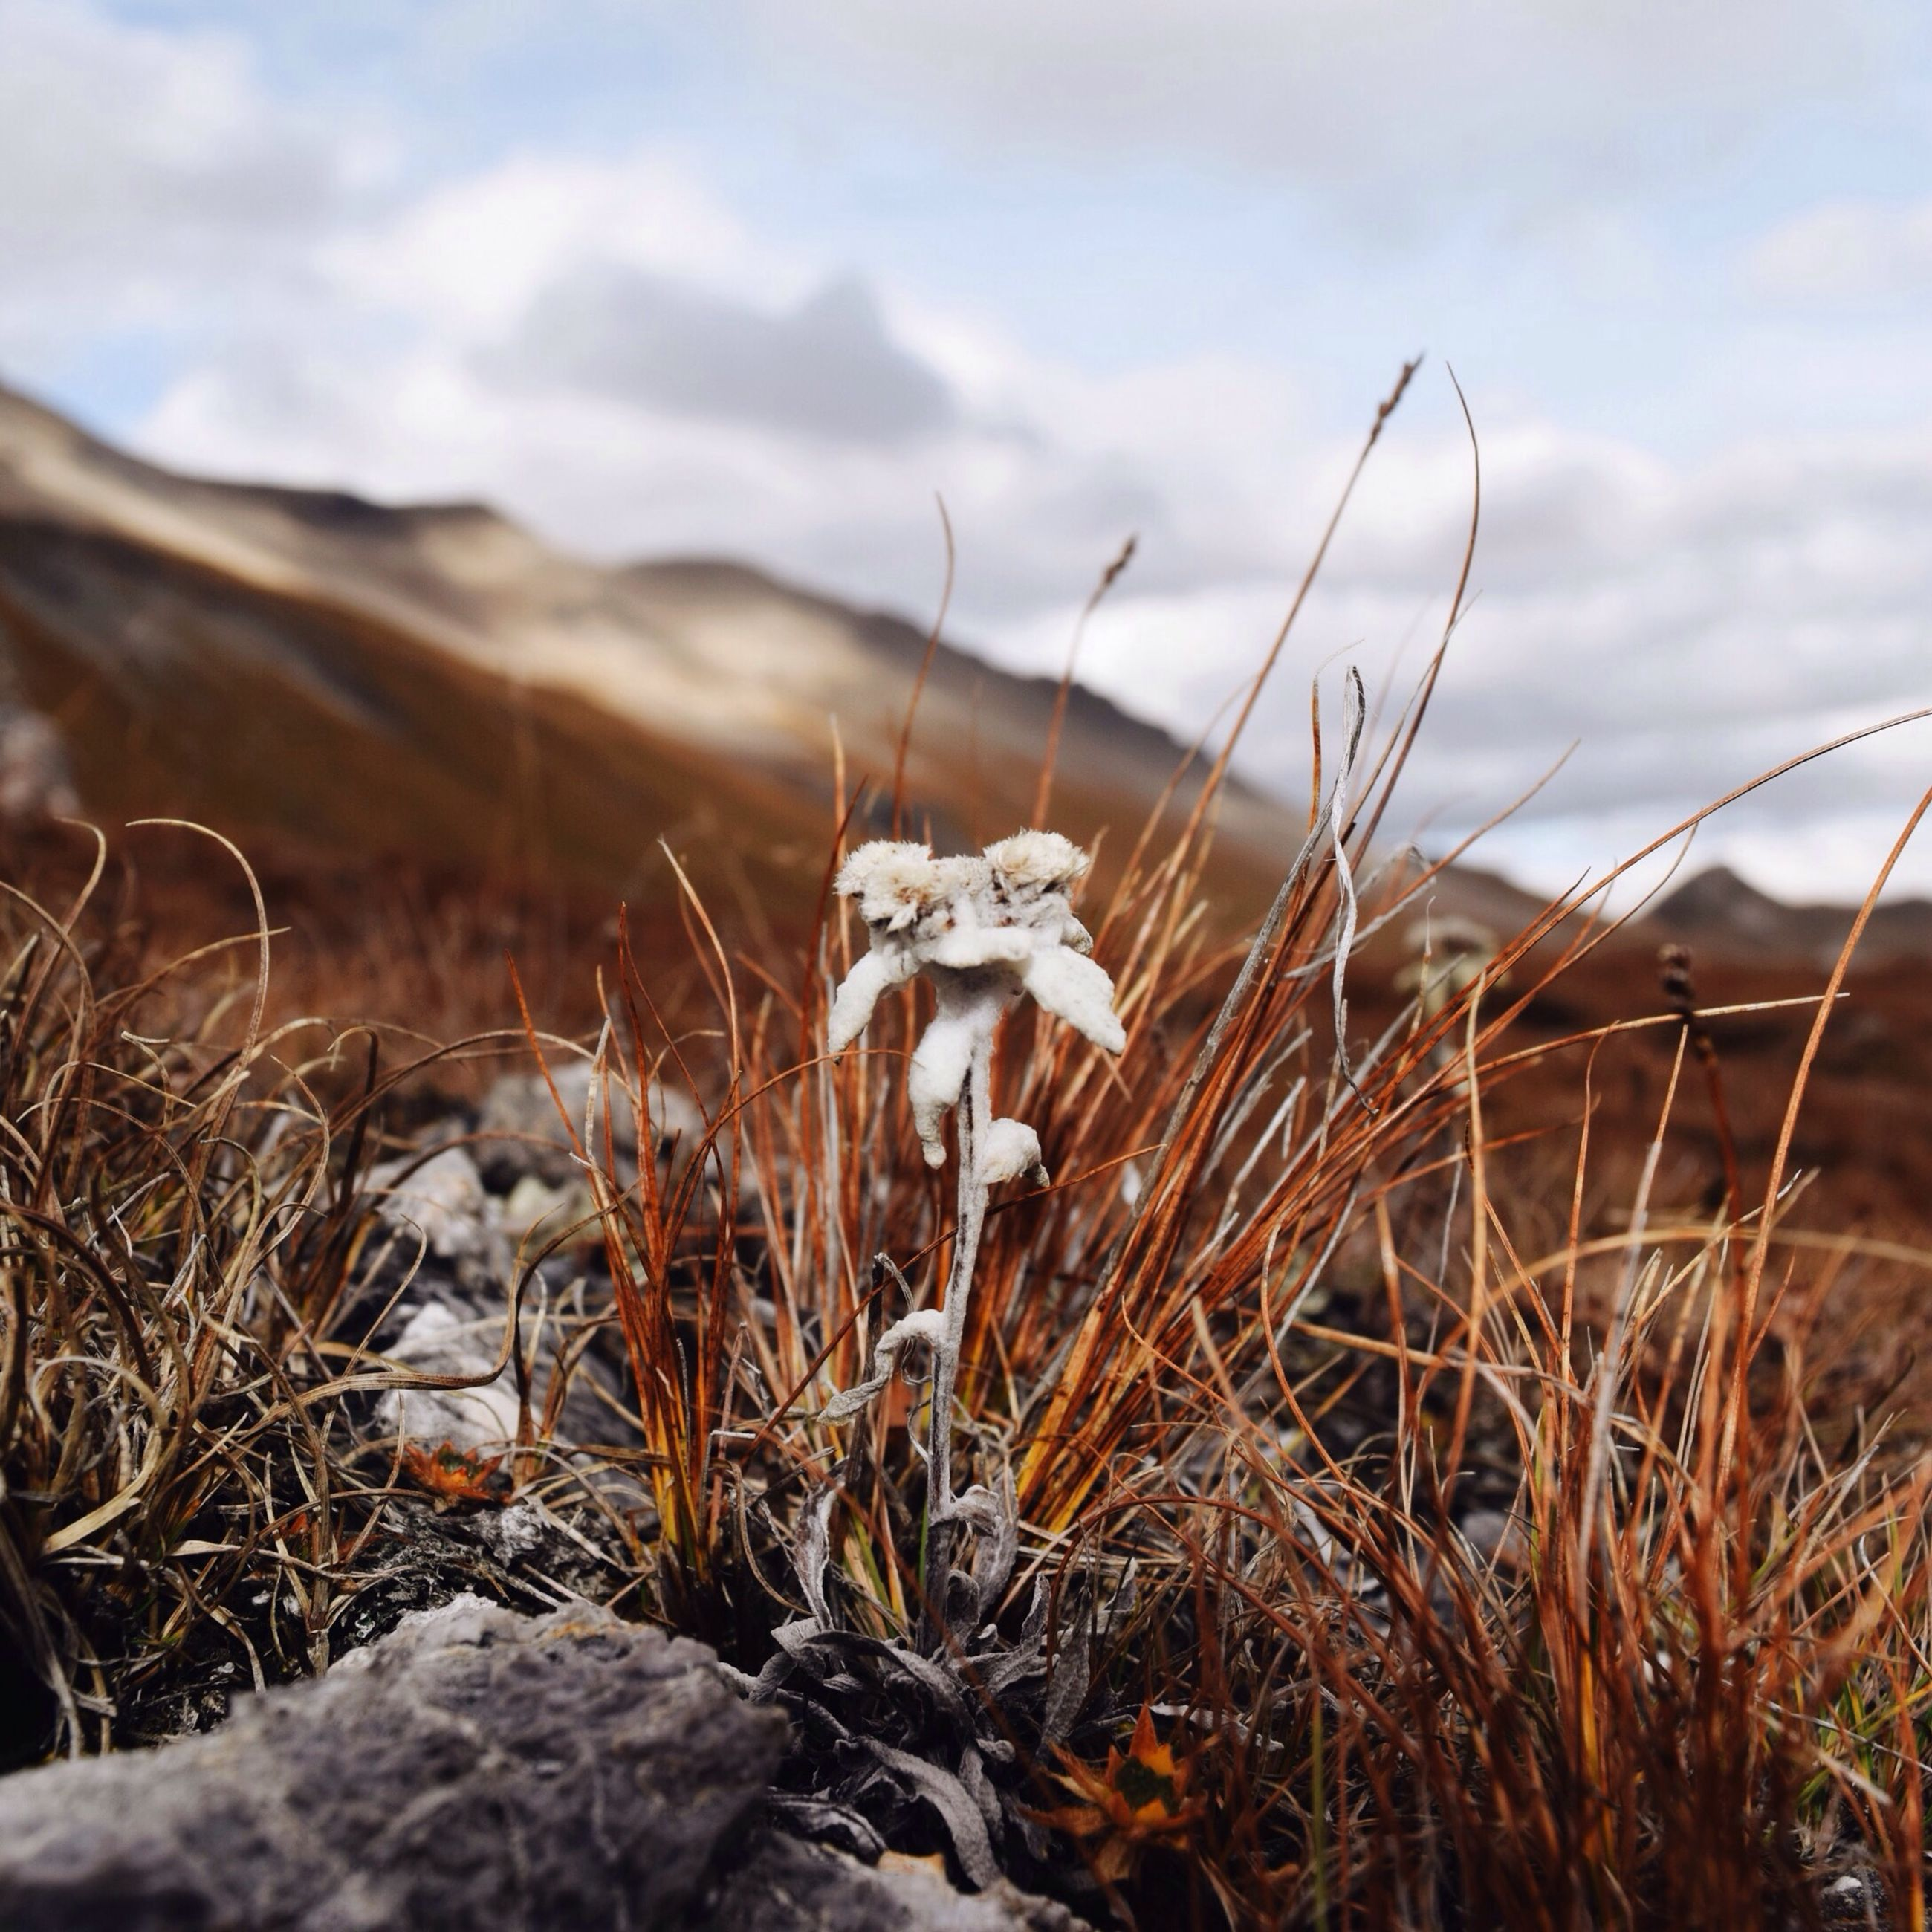 grass, field, dry, nature, sky, tranquility, plant, focus on foreground, close-up, landscape, growth, selective focus, dead plant, tranquil scene, day, beauty in nature, outdoors, no people, cloud - sky, non-urban scene